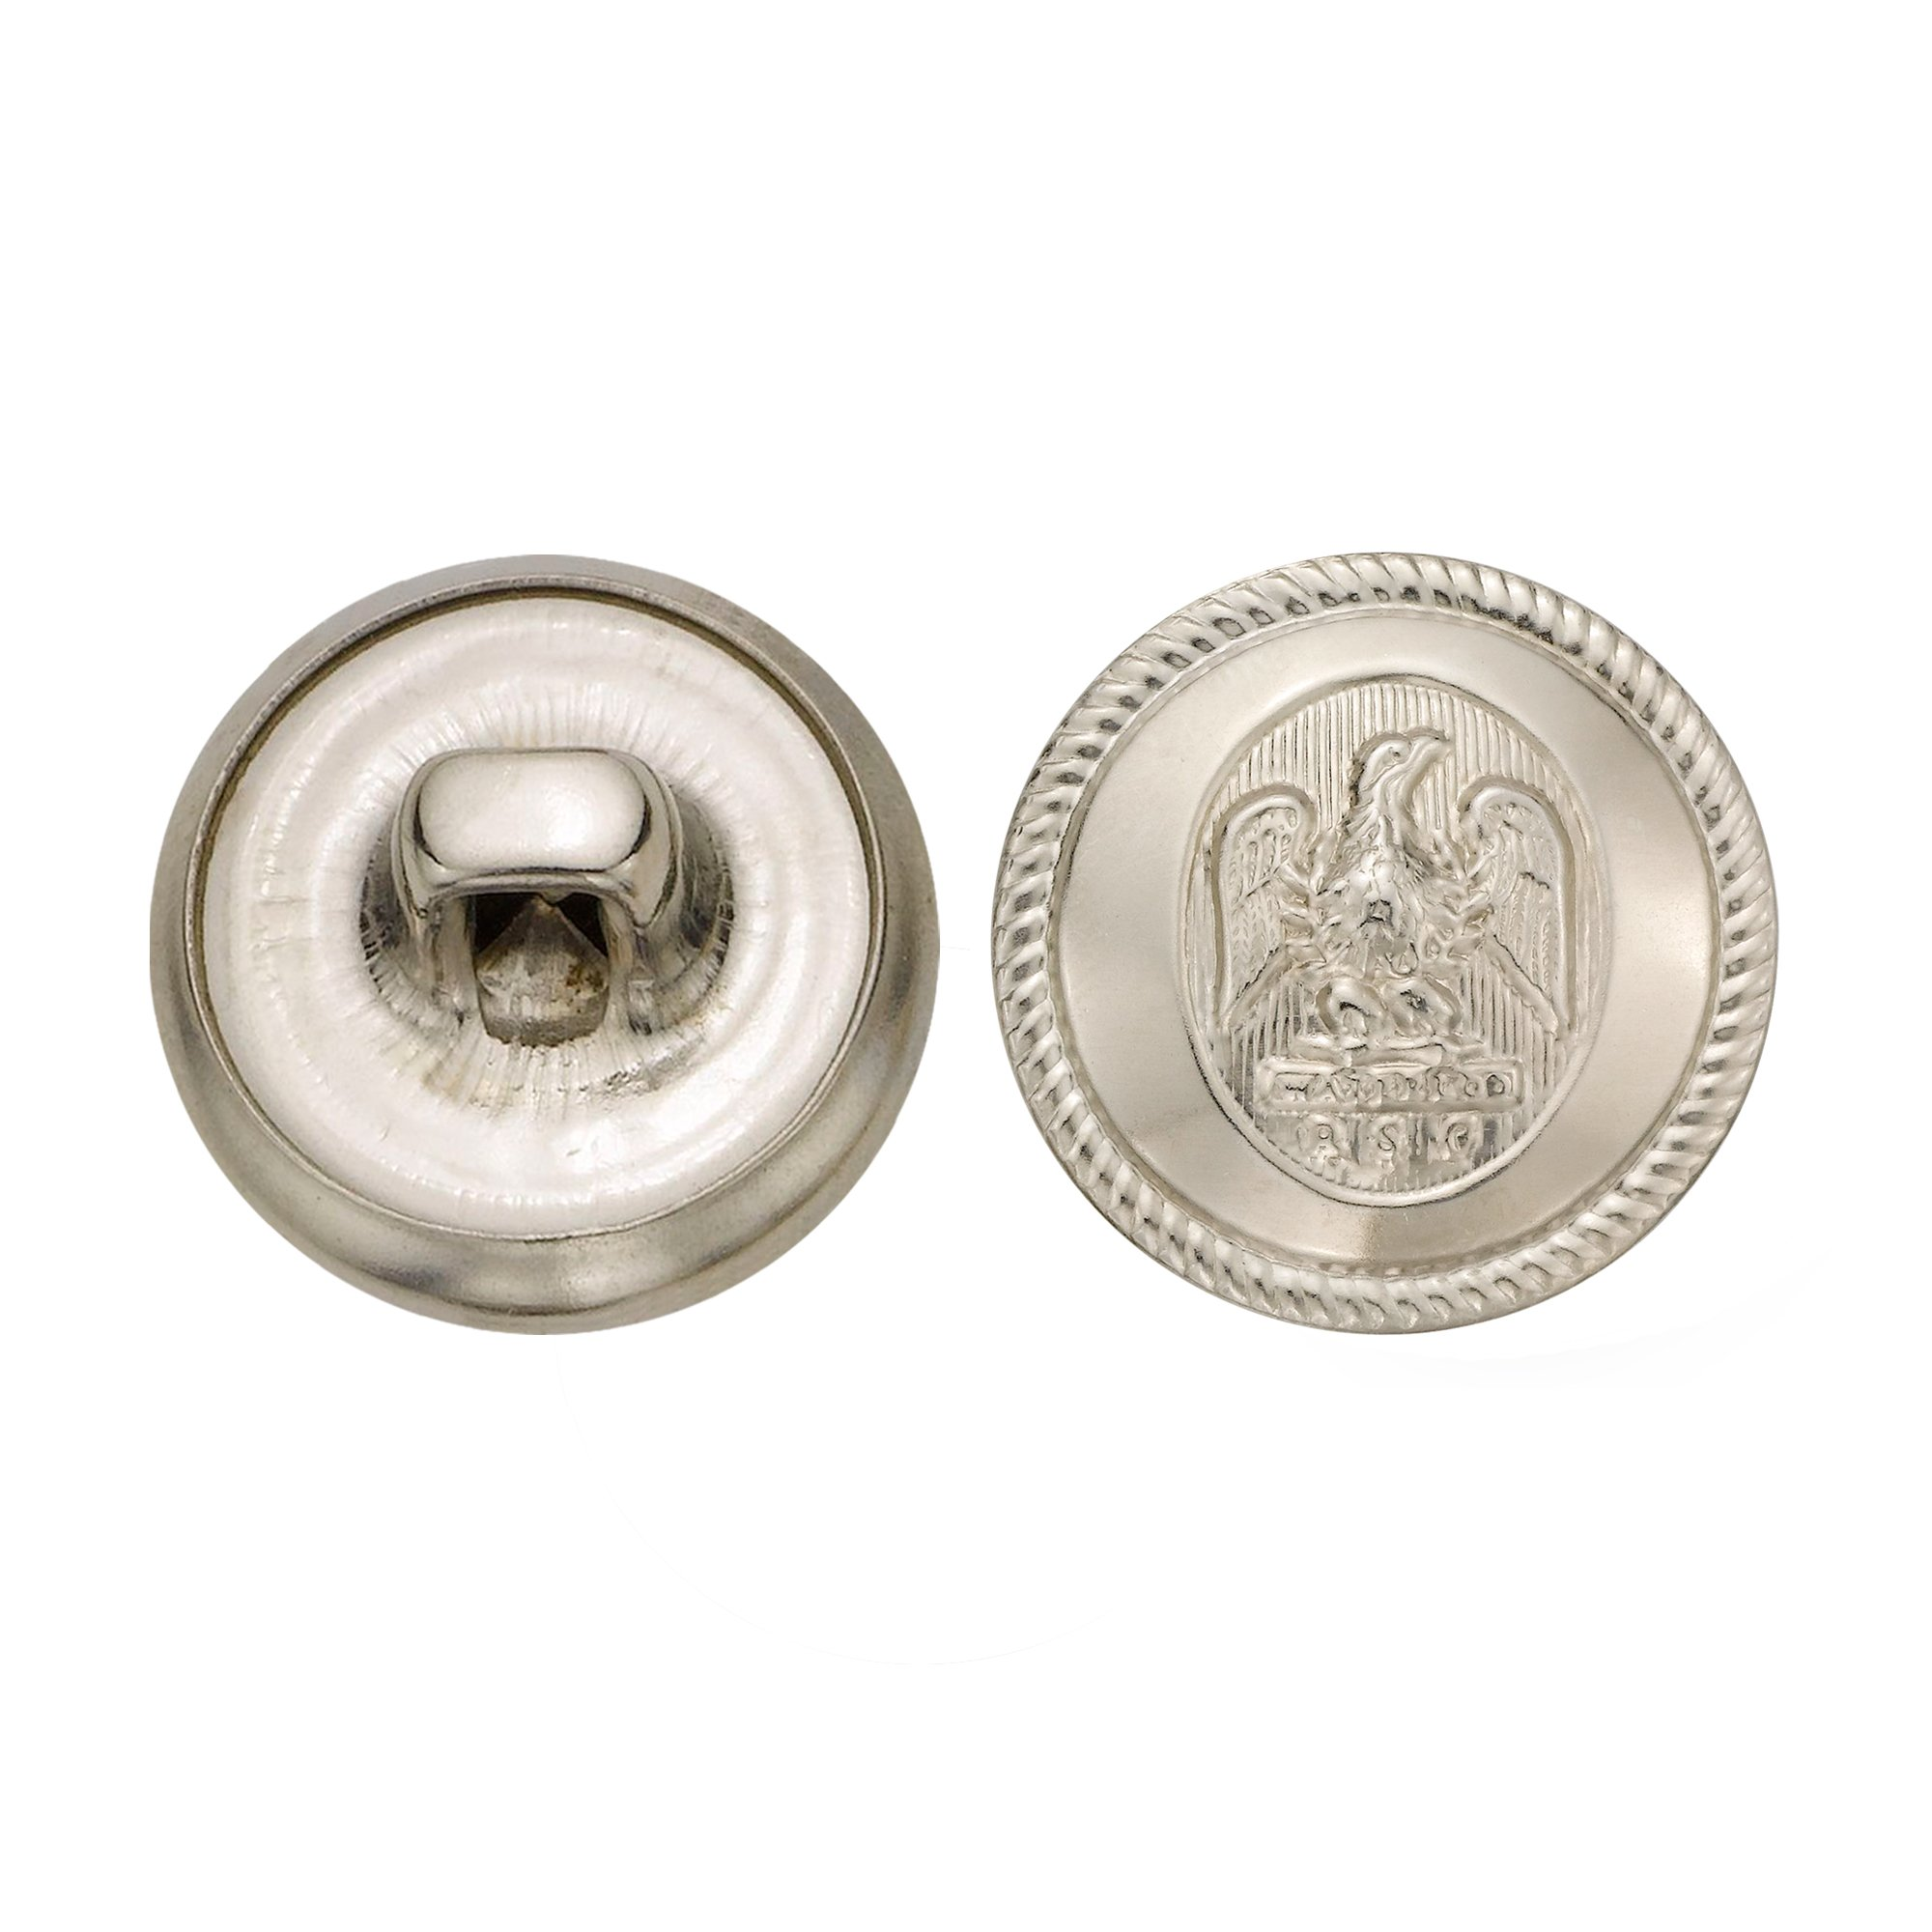 C&C Metal Products 5064 Rope Rim Usa Eagle Metal Button, Size 24 Ligne, Nickel, 72-Pack by C&C Metal Products Corp (Image #1)